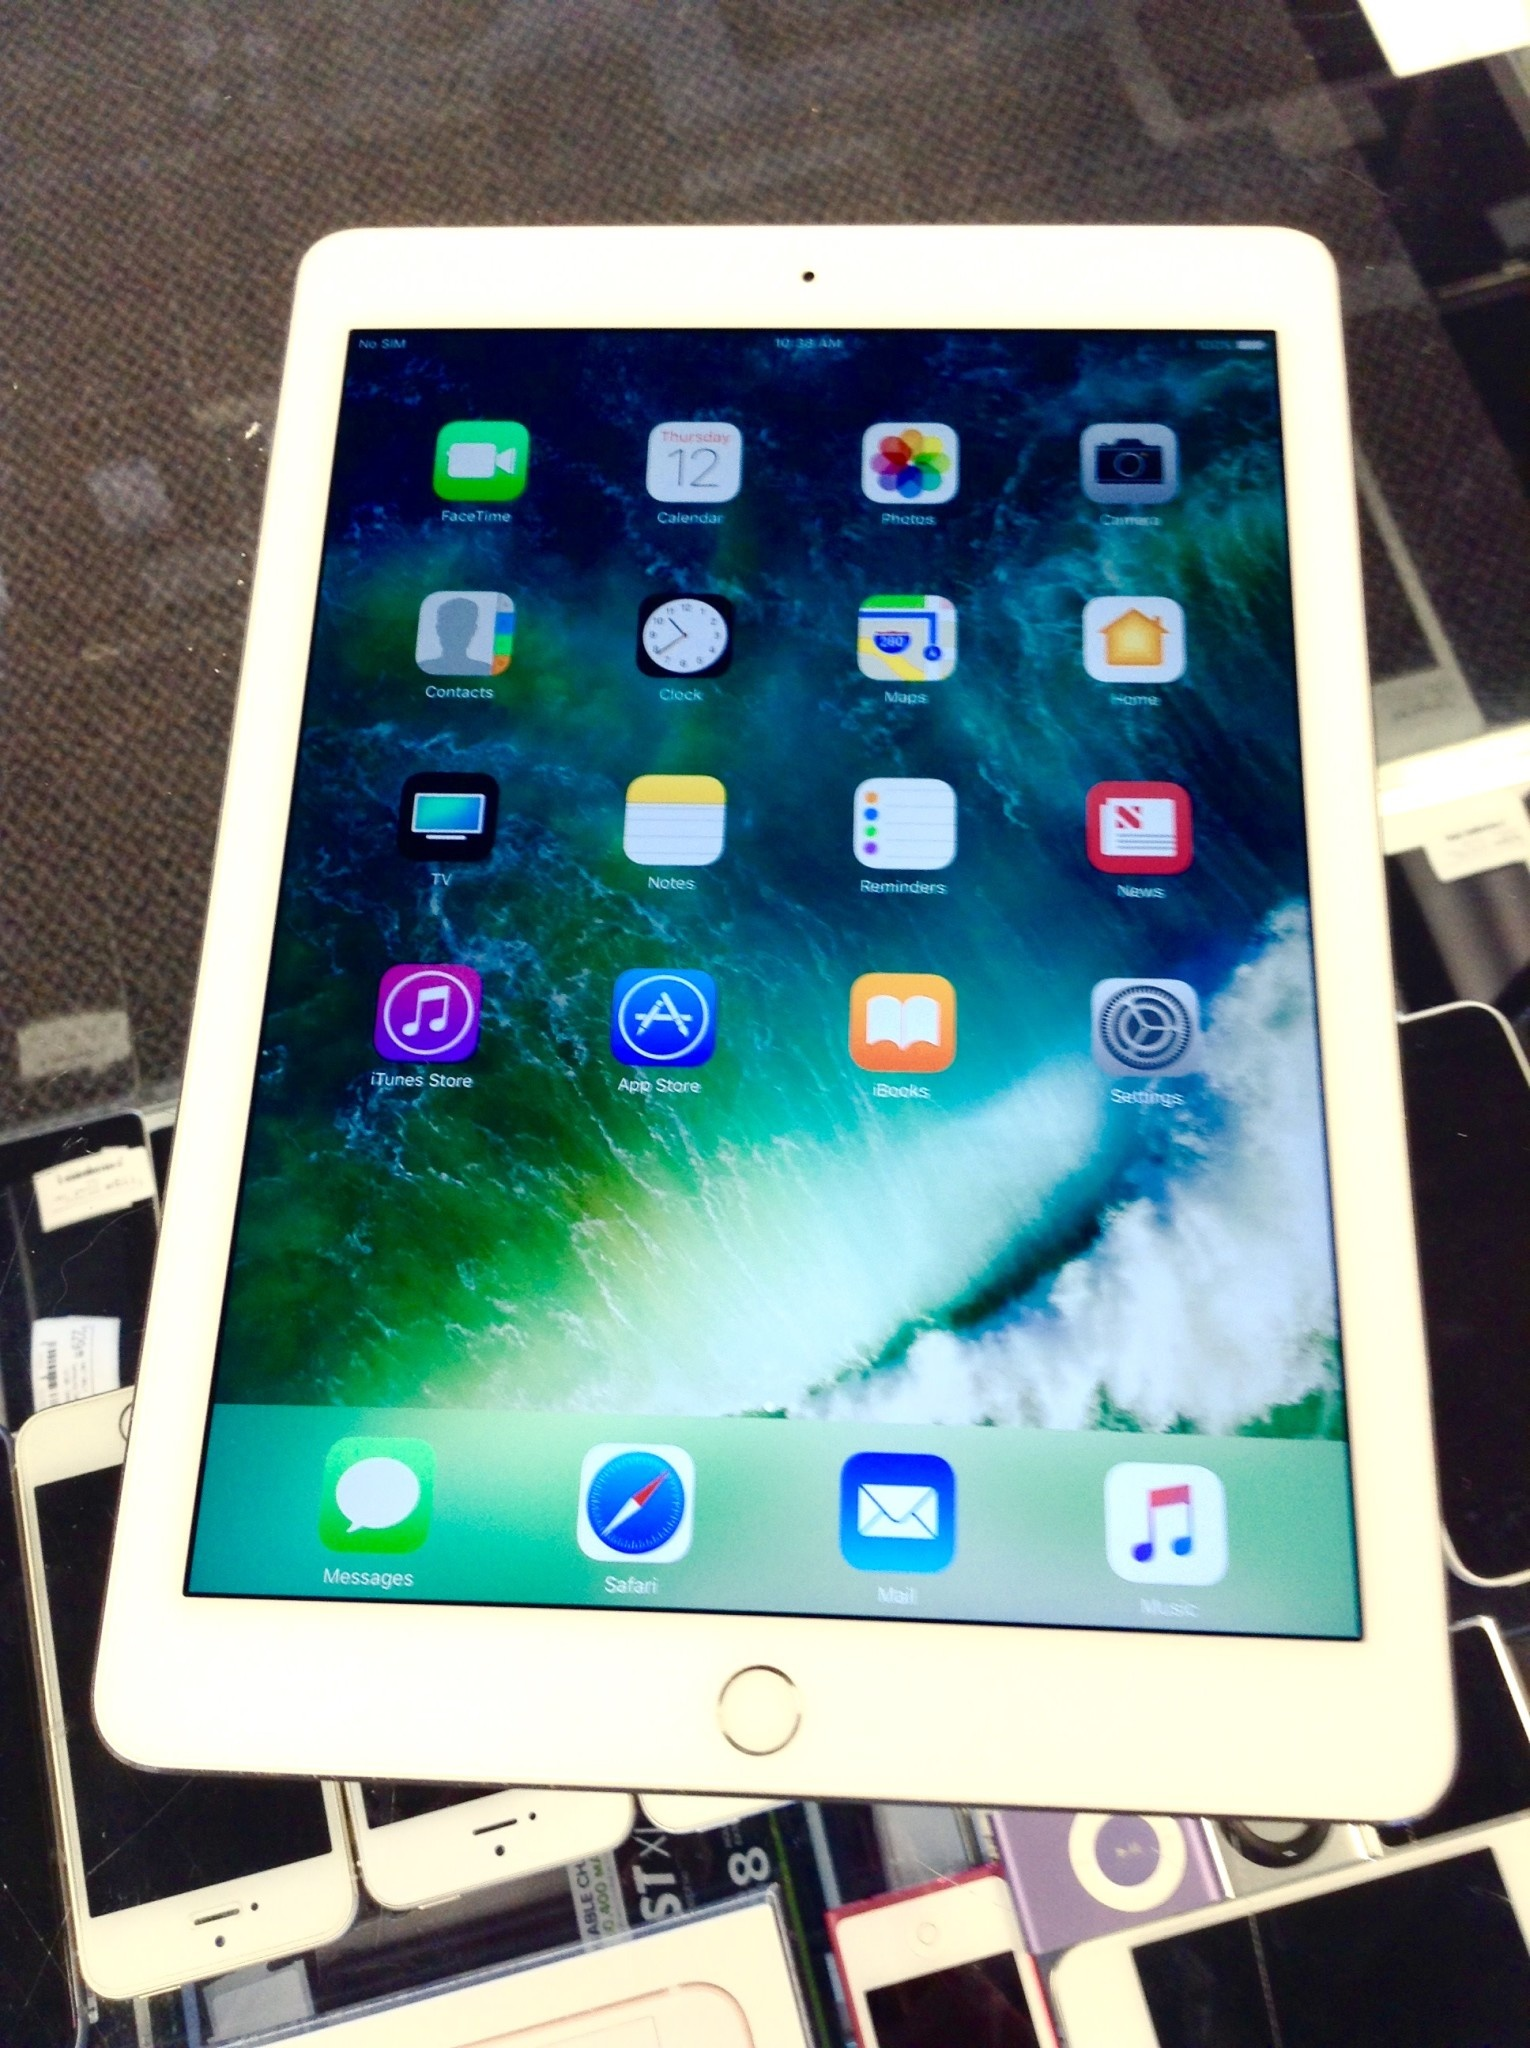 Apple iPad Air 2 - 64GB - White/Silver - WiFi Only